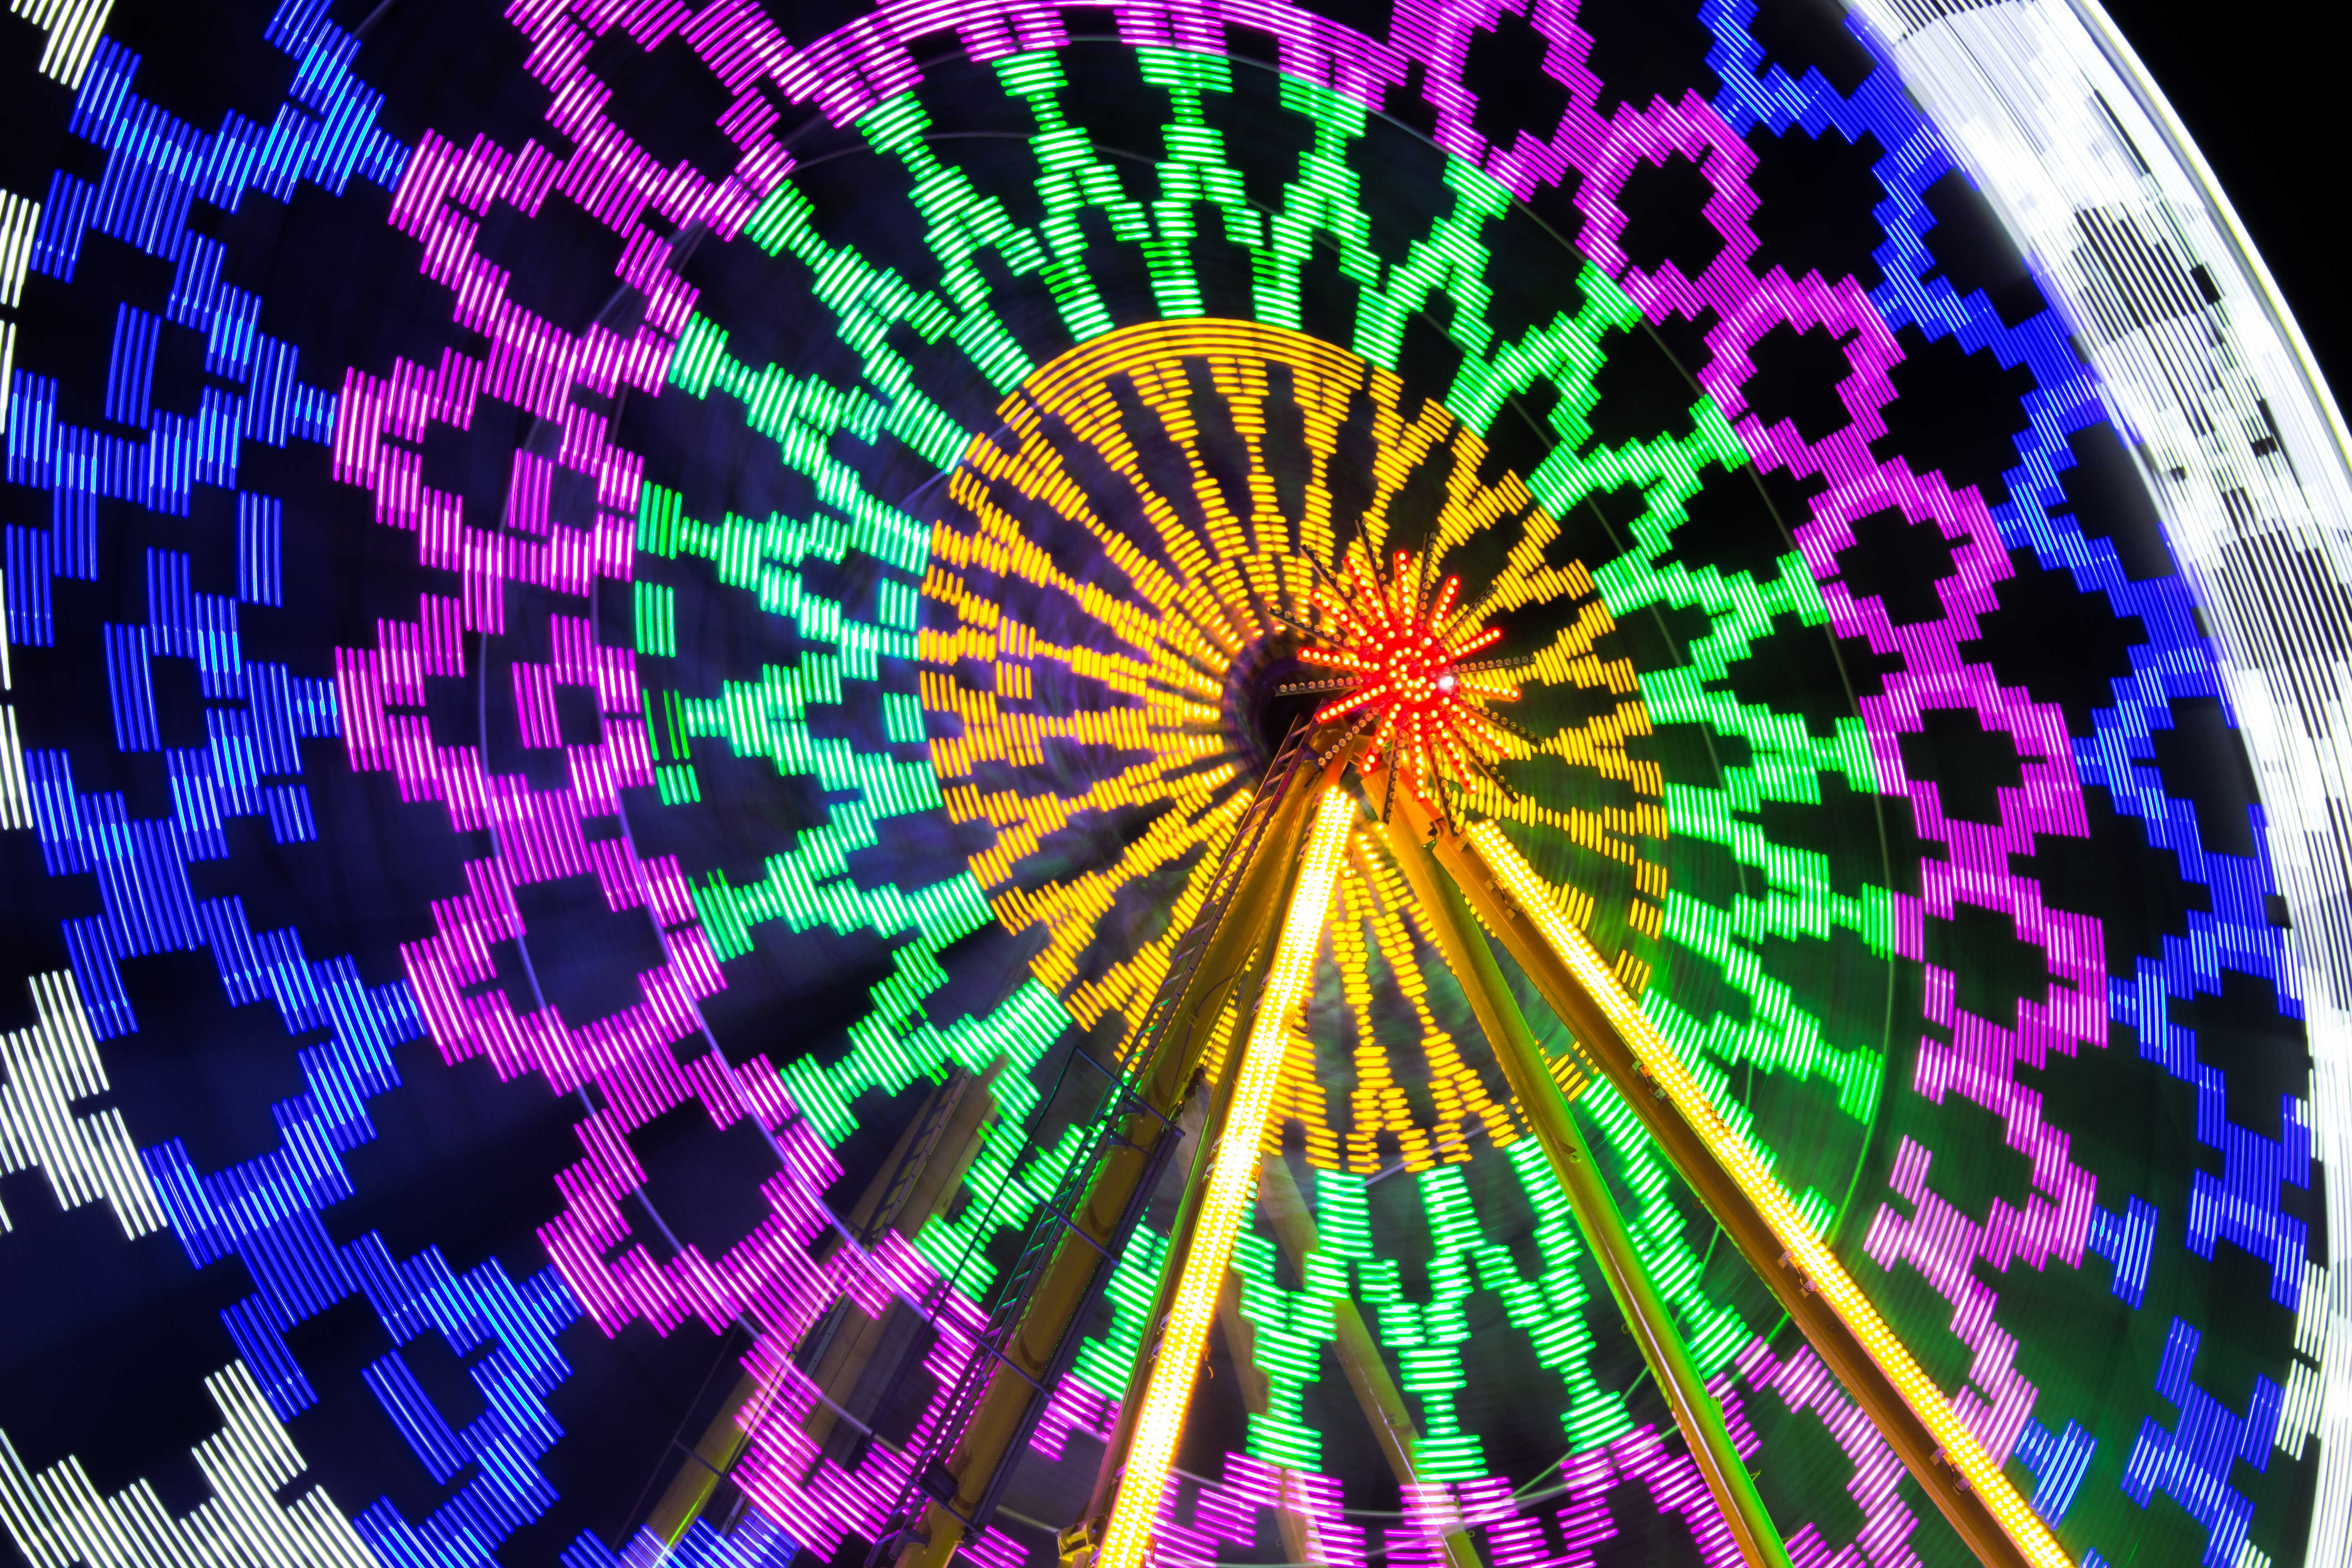 71715 download wallpaper Miscellanea, Miscellaneous, Ferris Wheel, Attraction, Neon, Shine, Light, Long Exposure screensavers and pictures for free